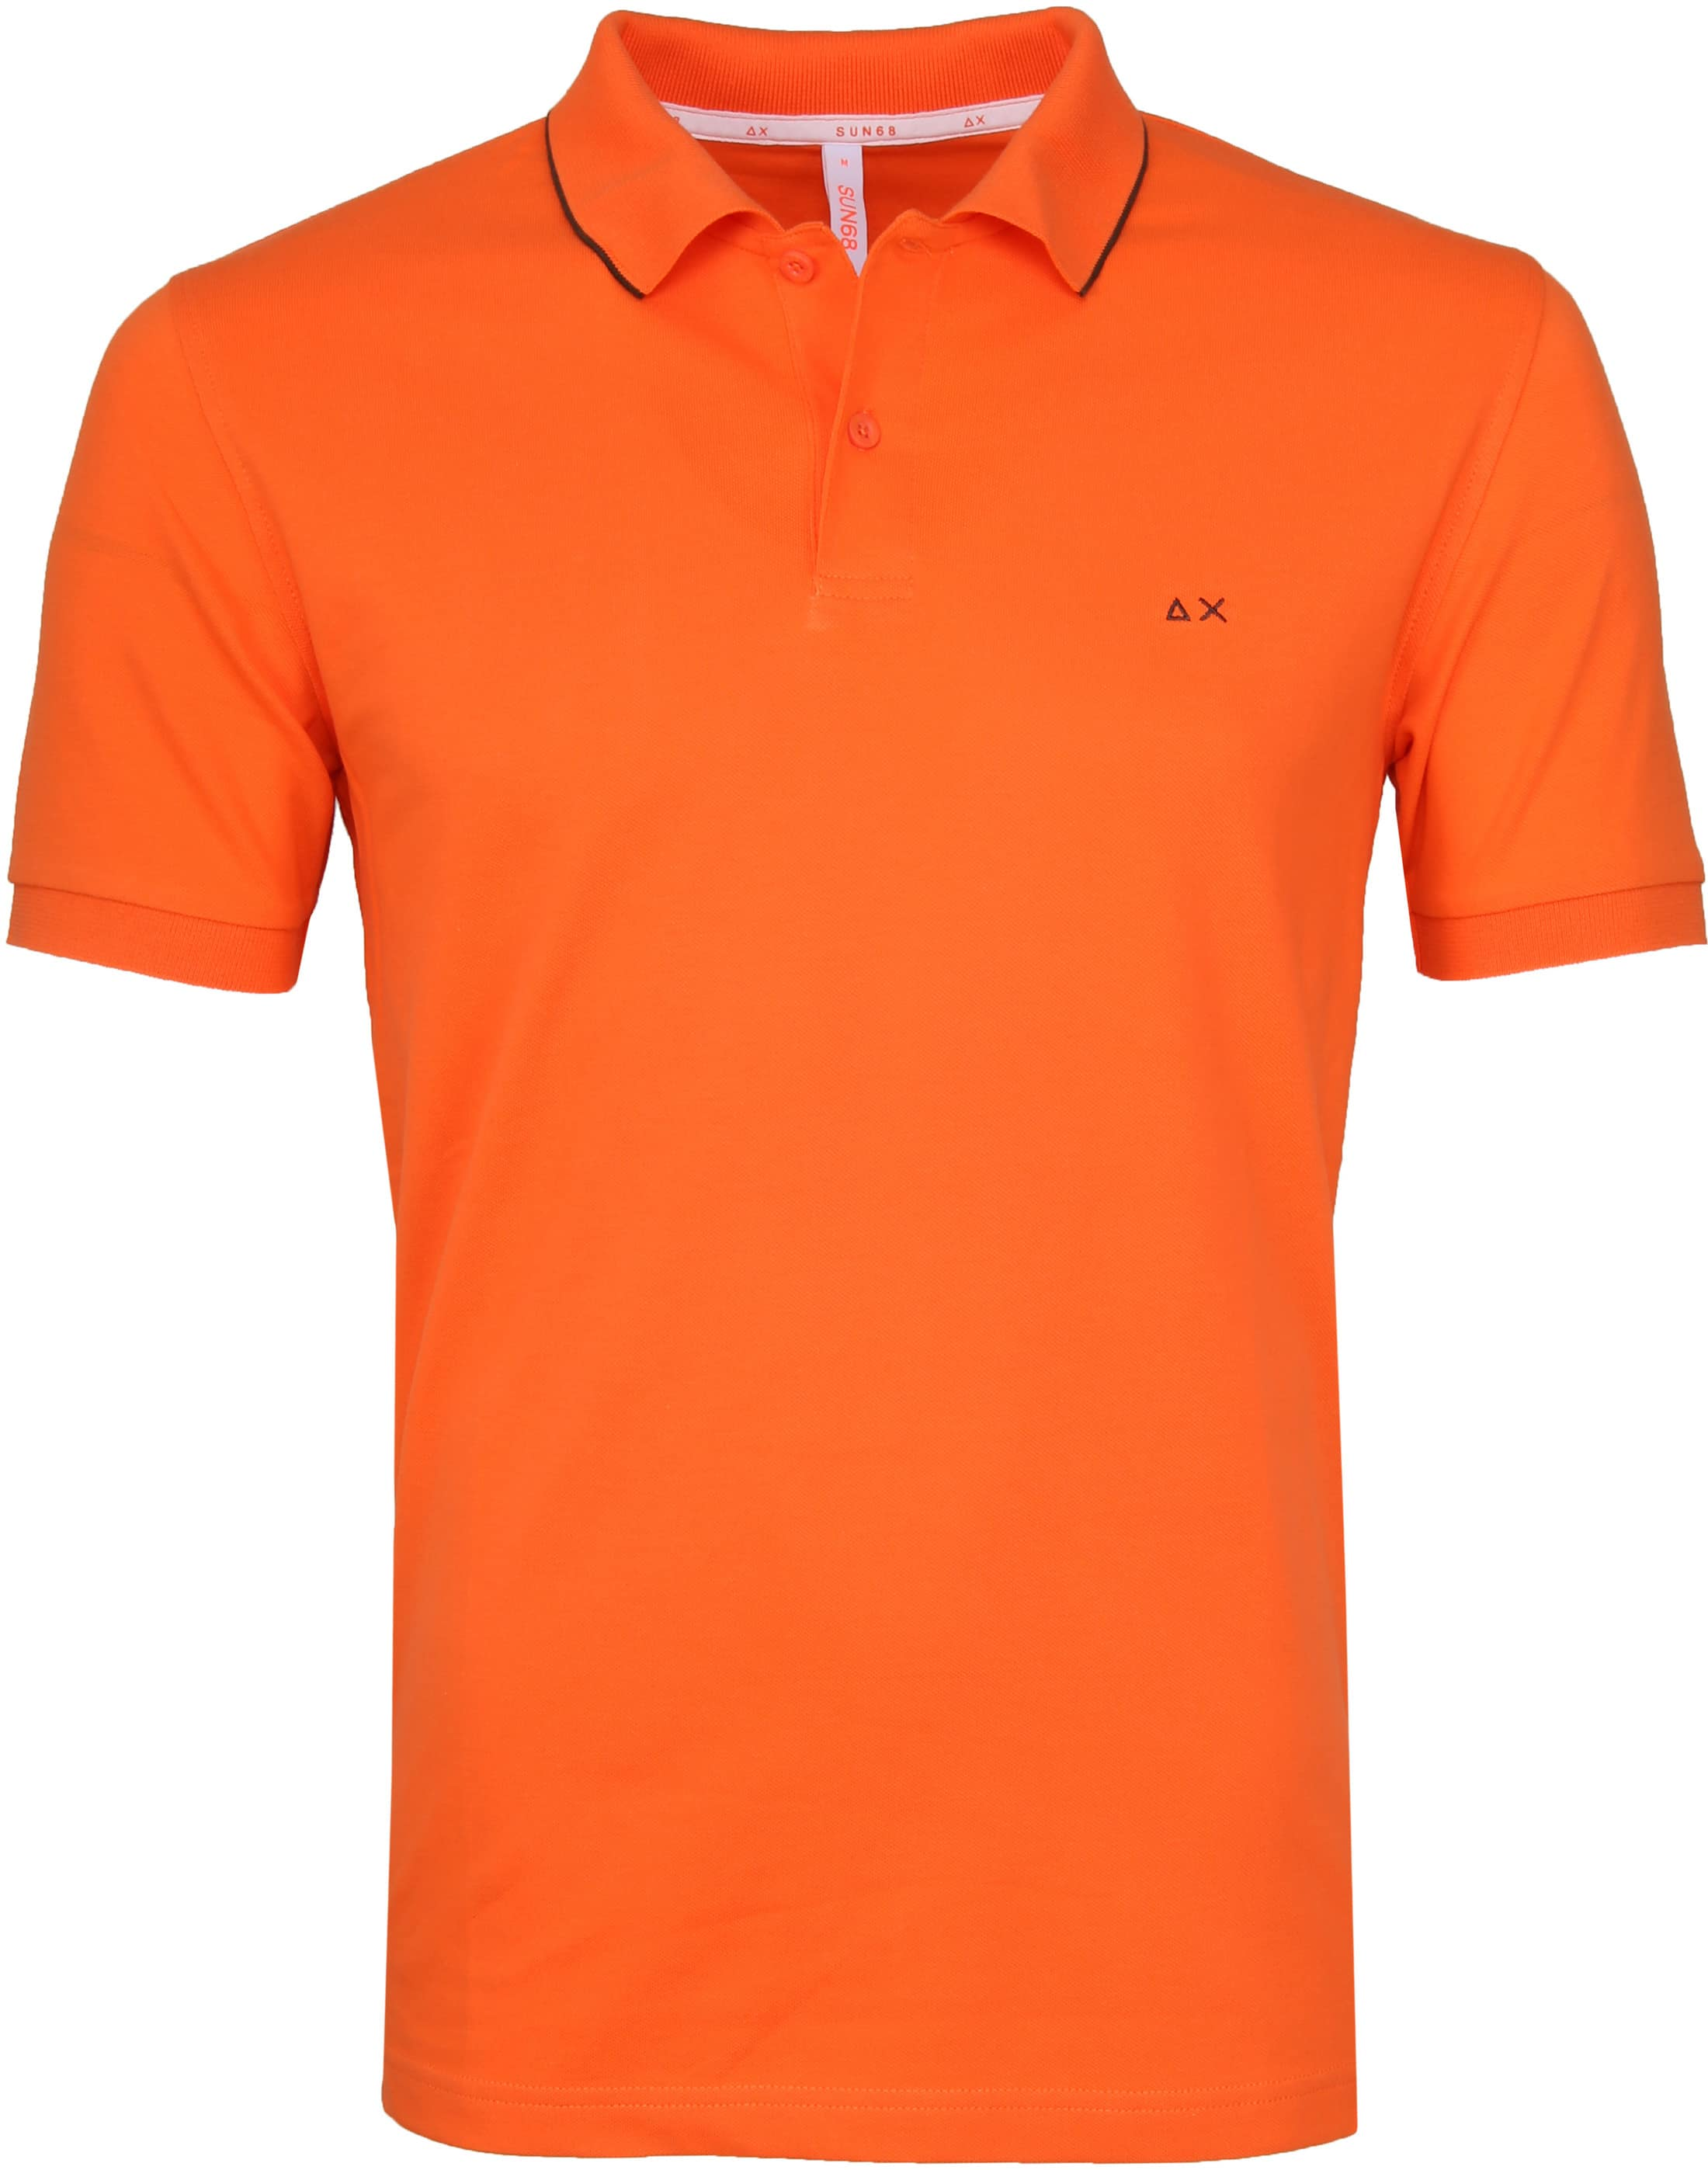 Sun68 Poloshirt Small Stripe Orange SF foto 0